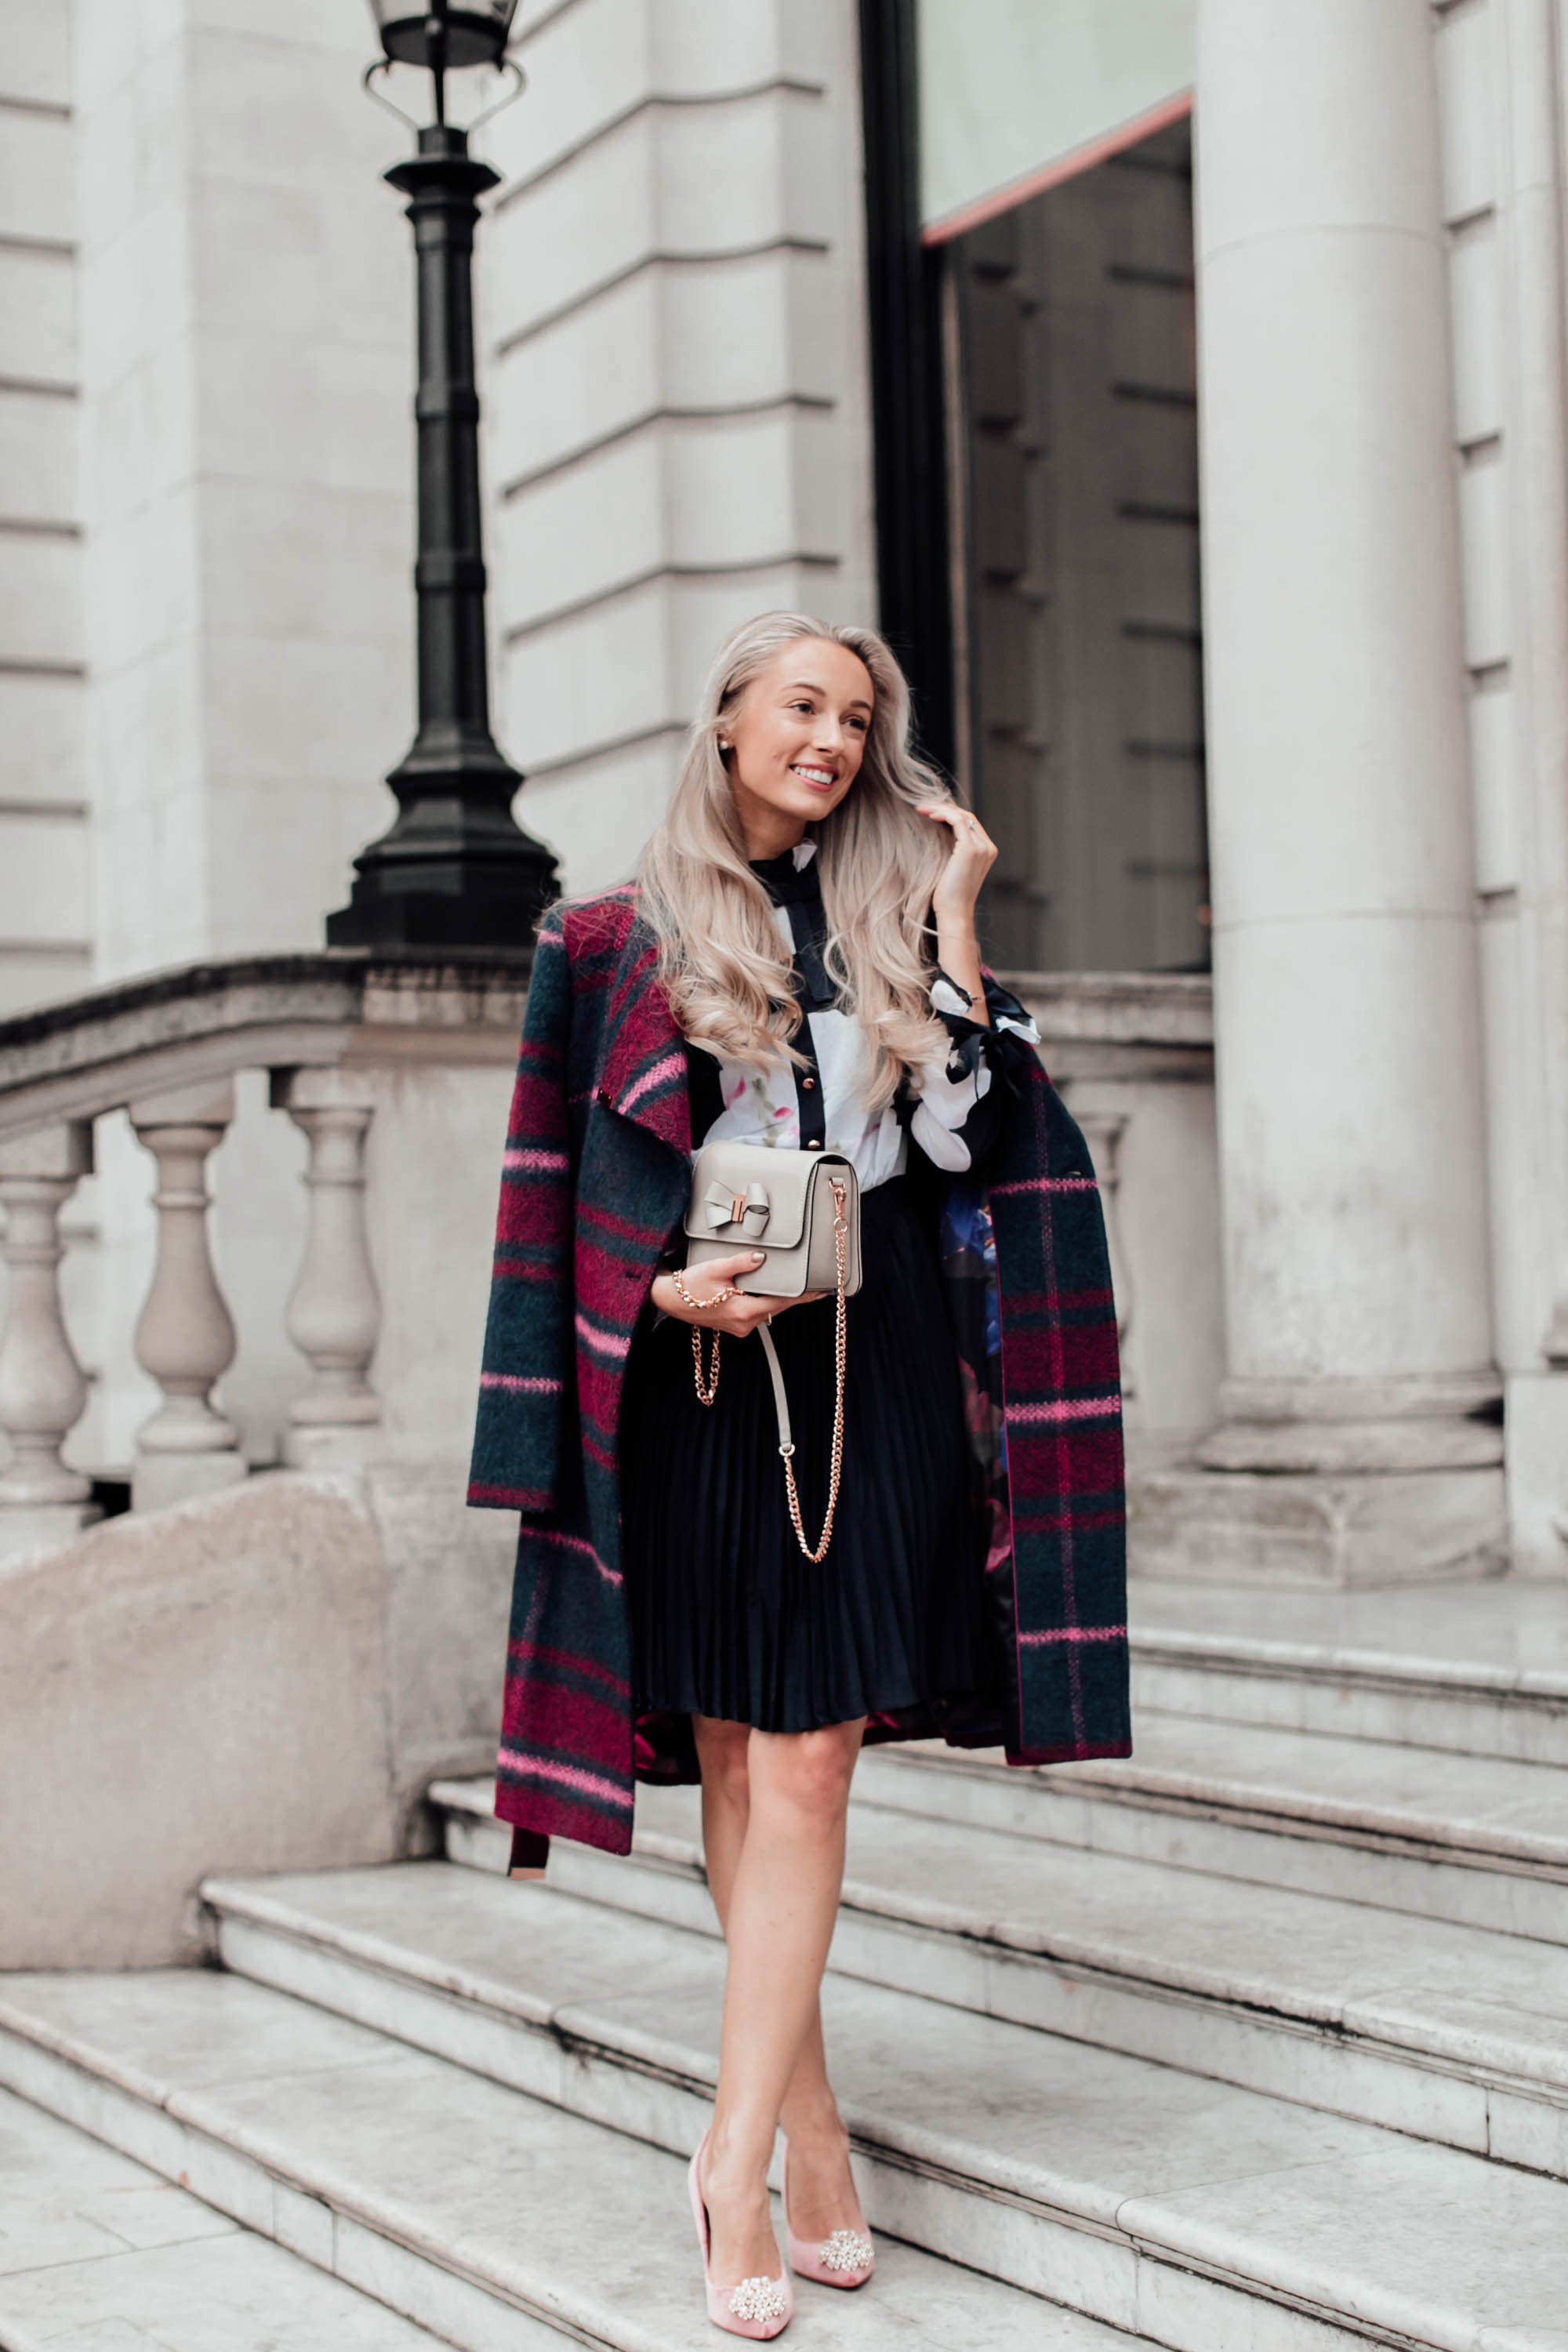 How To Dress For Winter Special Occasions